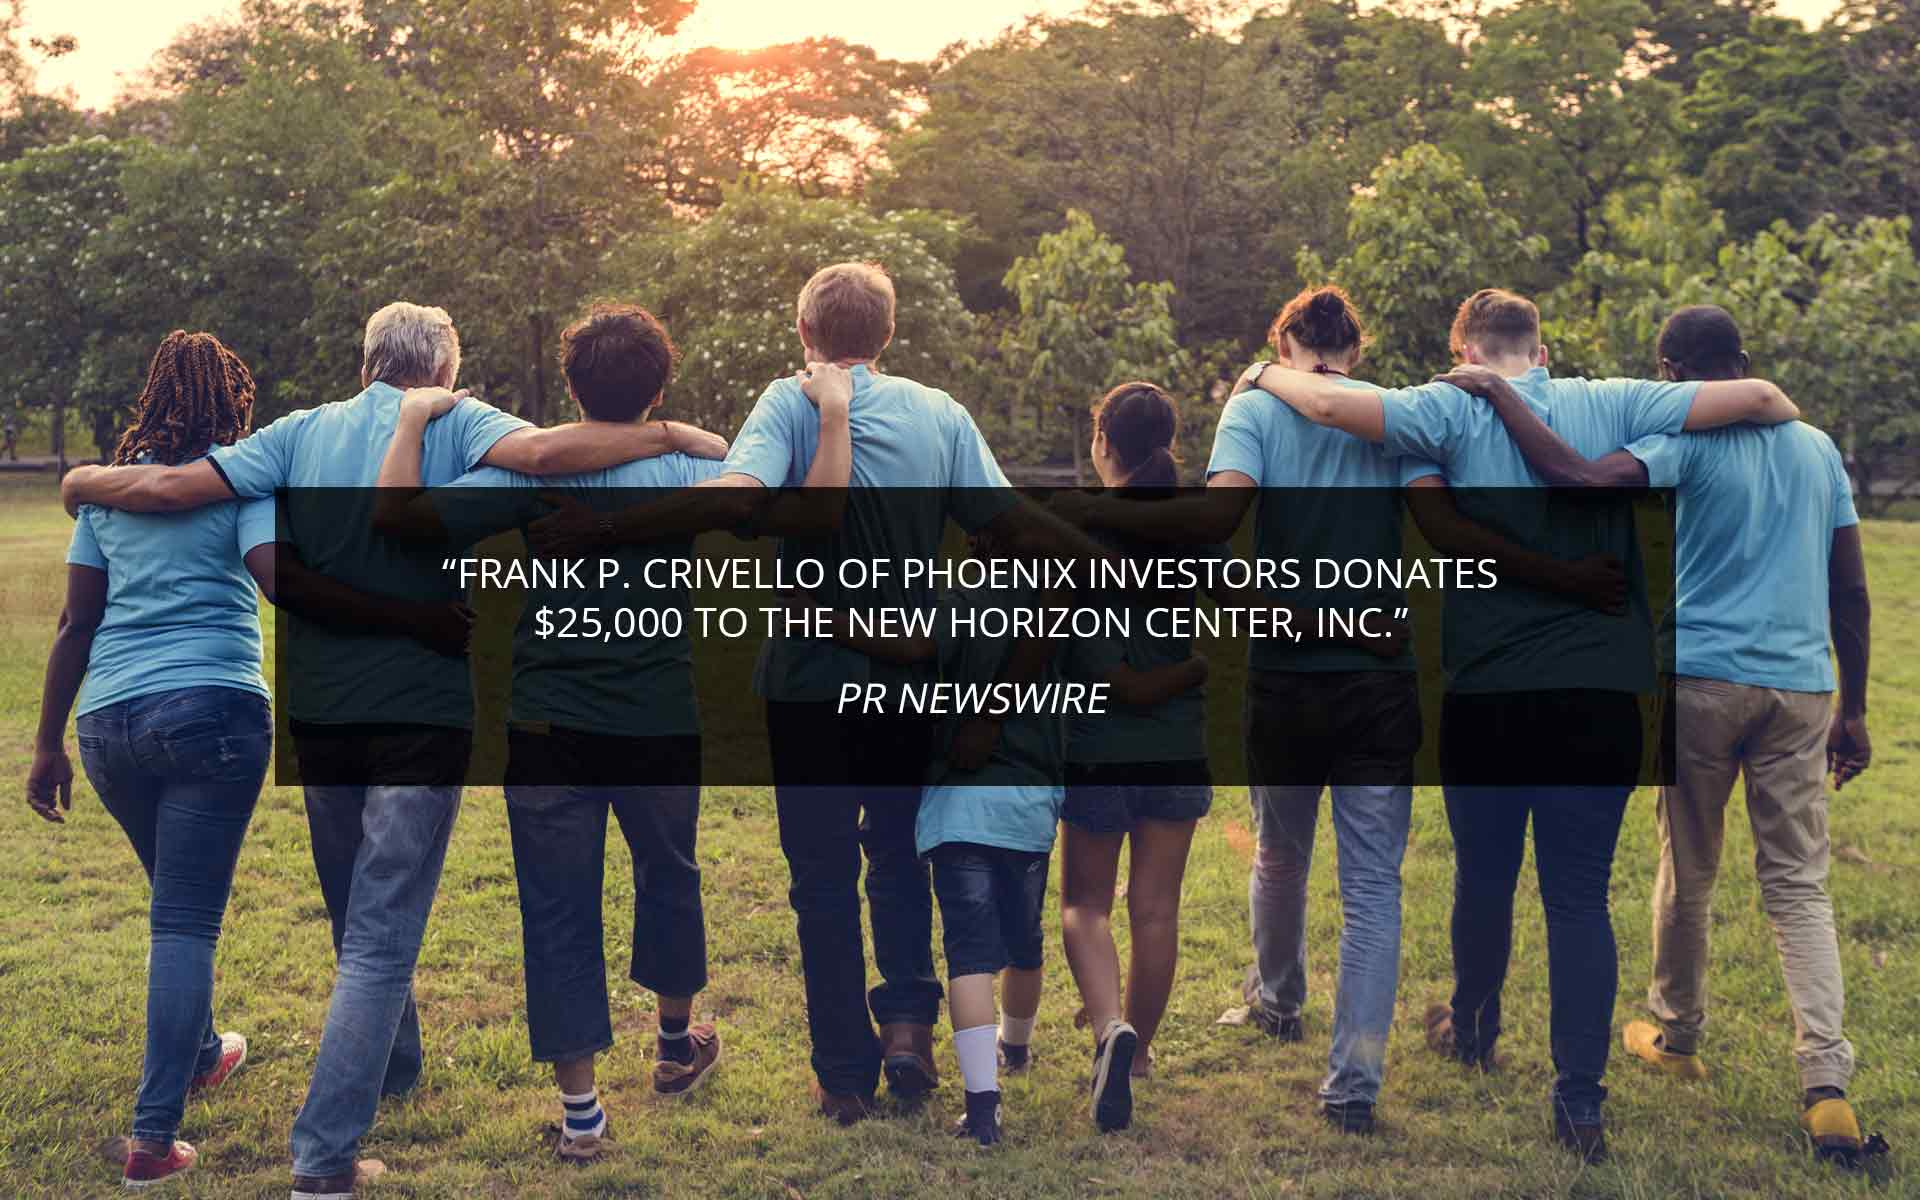 Frank P. Crivello Of Phoenix Investors Donates $25,000 To The New Horizon Center, Inc.